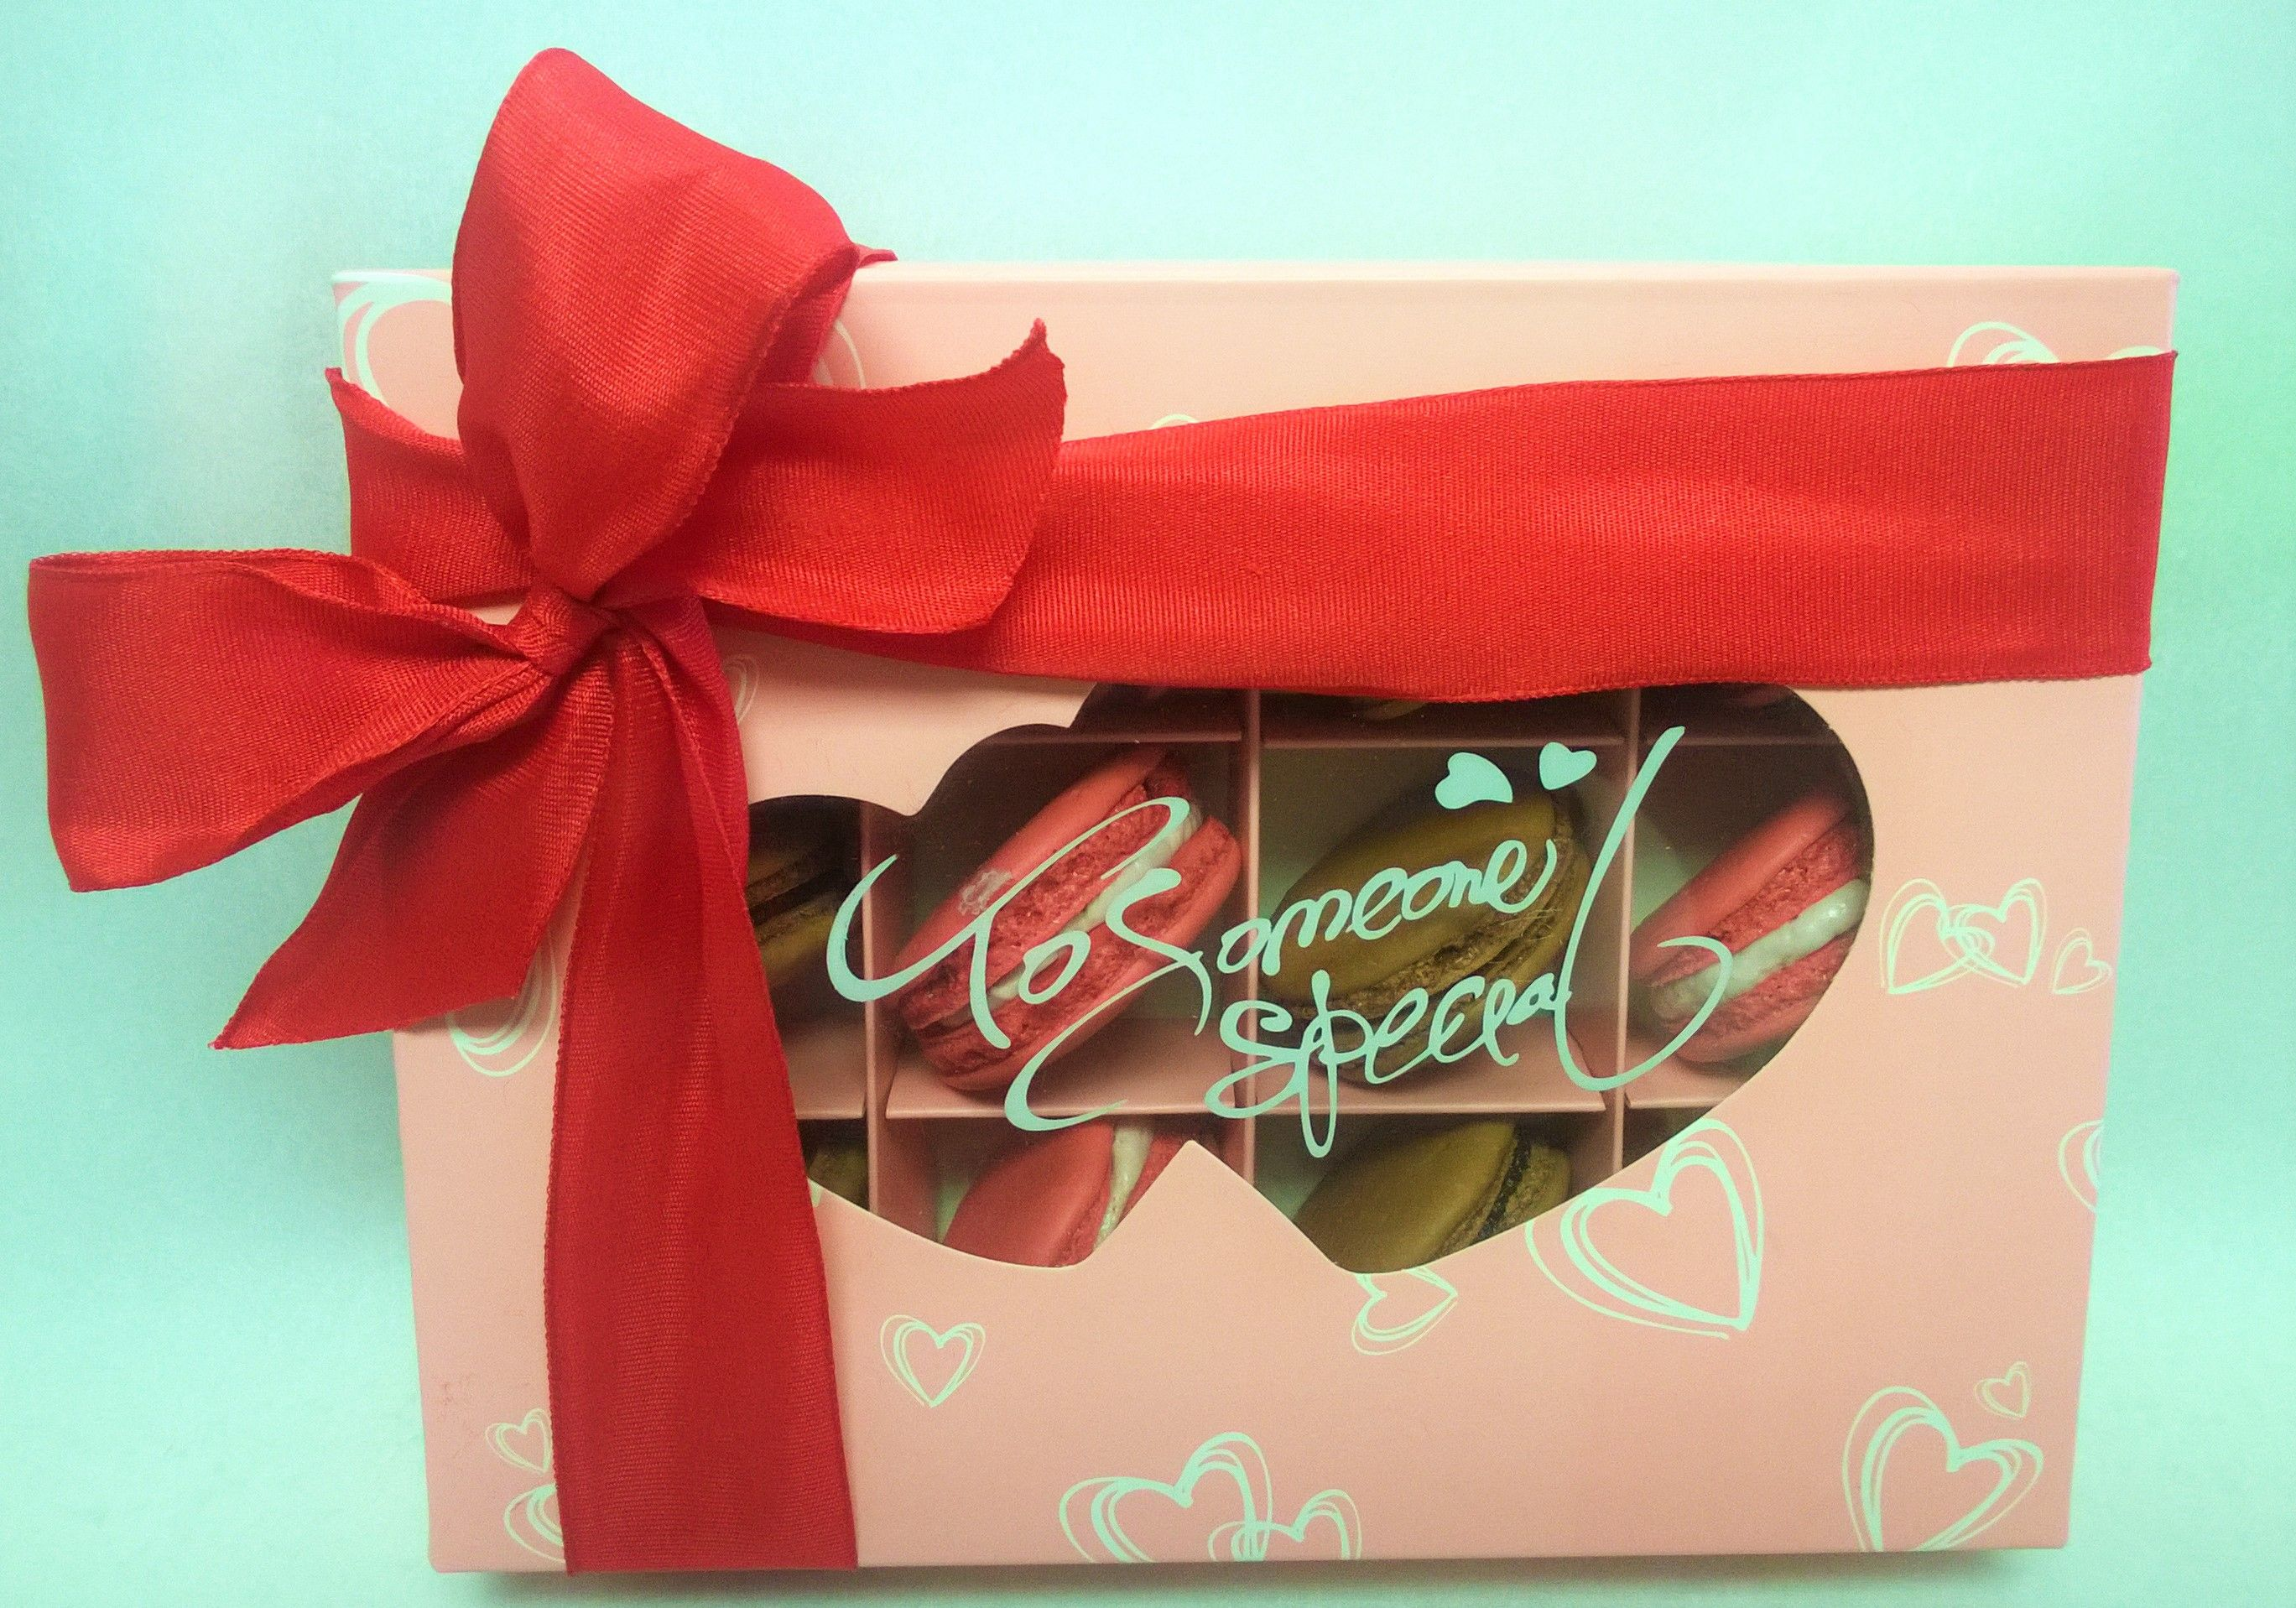 Valentines Day Macaron Gift Box for that special someone in your life.